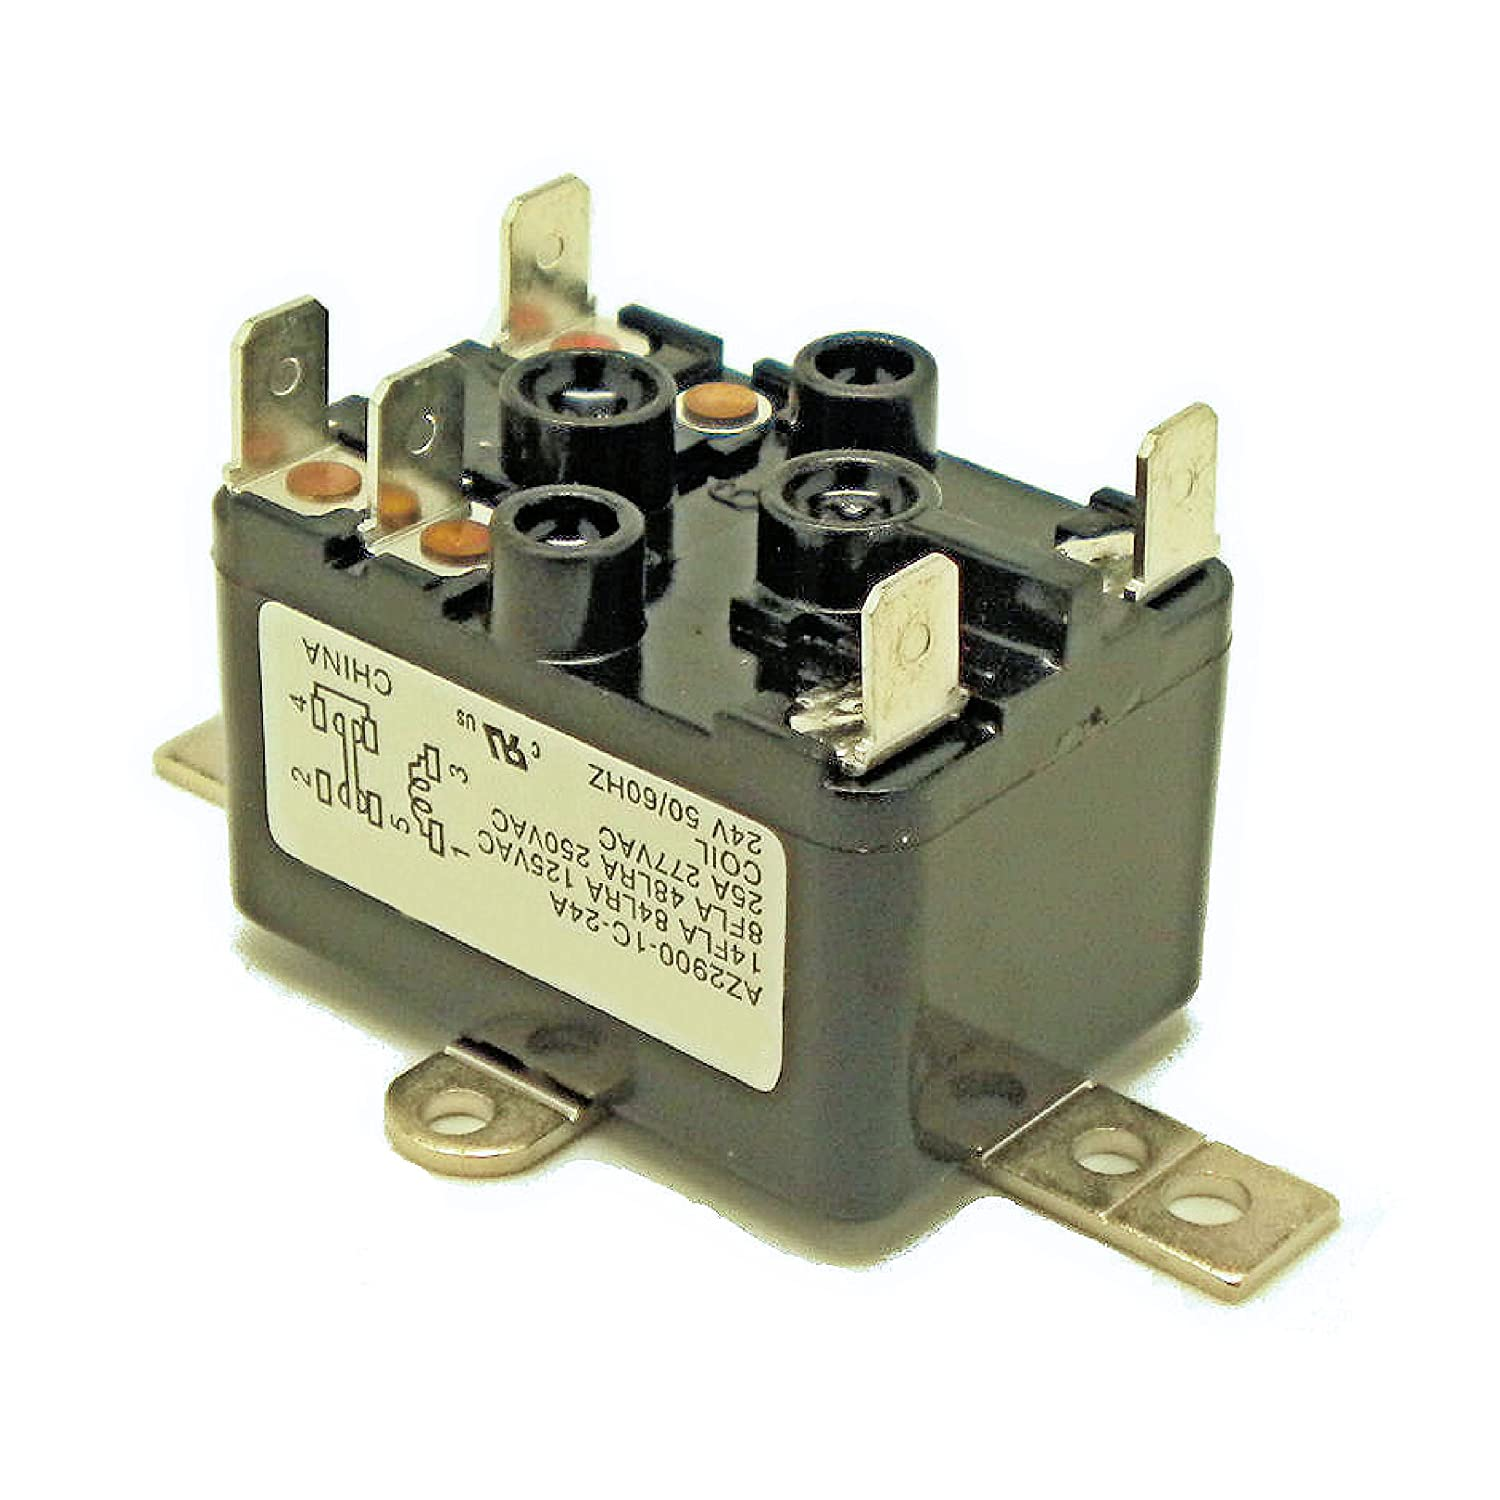 Relay Spdt 24 Volt Coil Onetrip Parts Direct Replacement For Rheem Ruud Ignitor Gas Furnace Circuit Control Board Weatherking Oem Part 42 25104 06 Household Electronic Relays